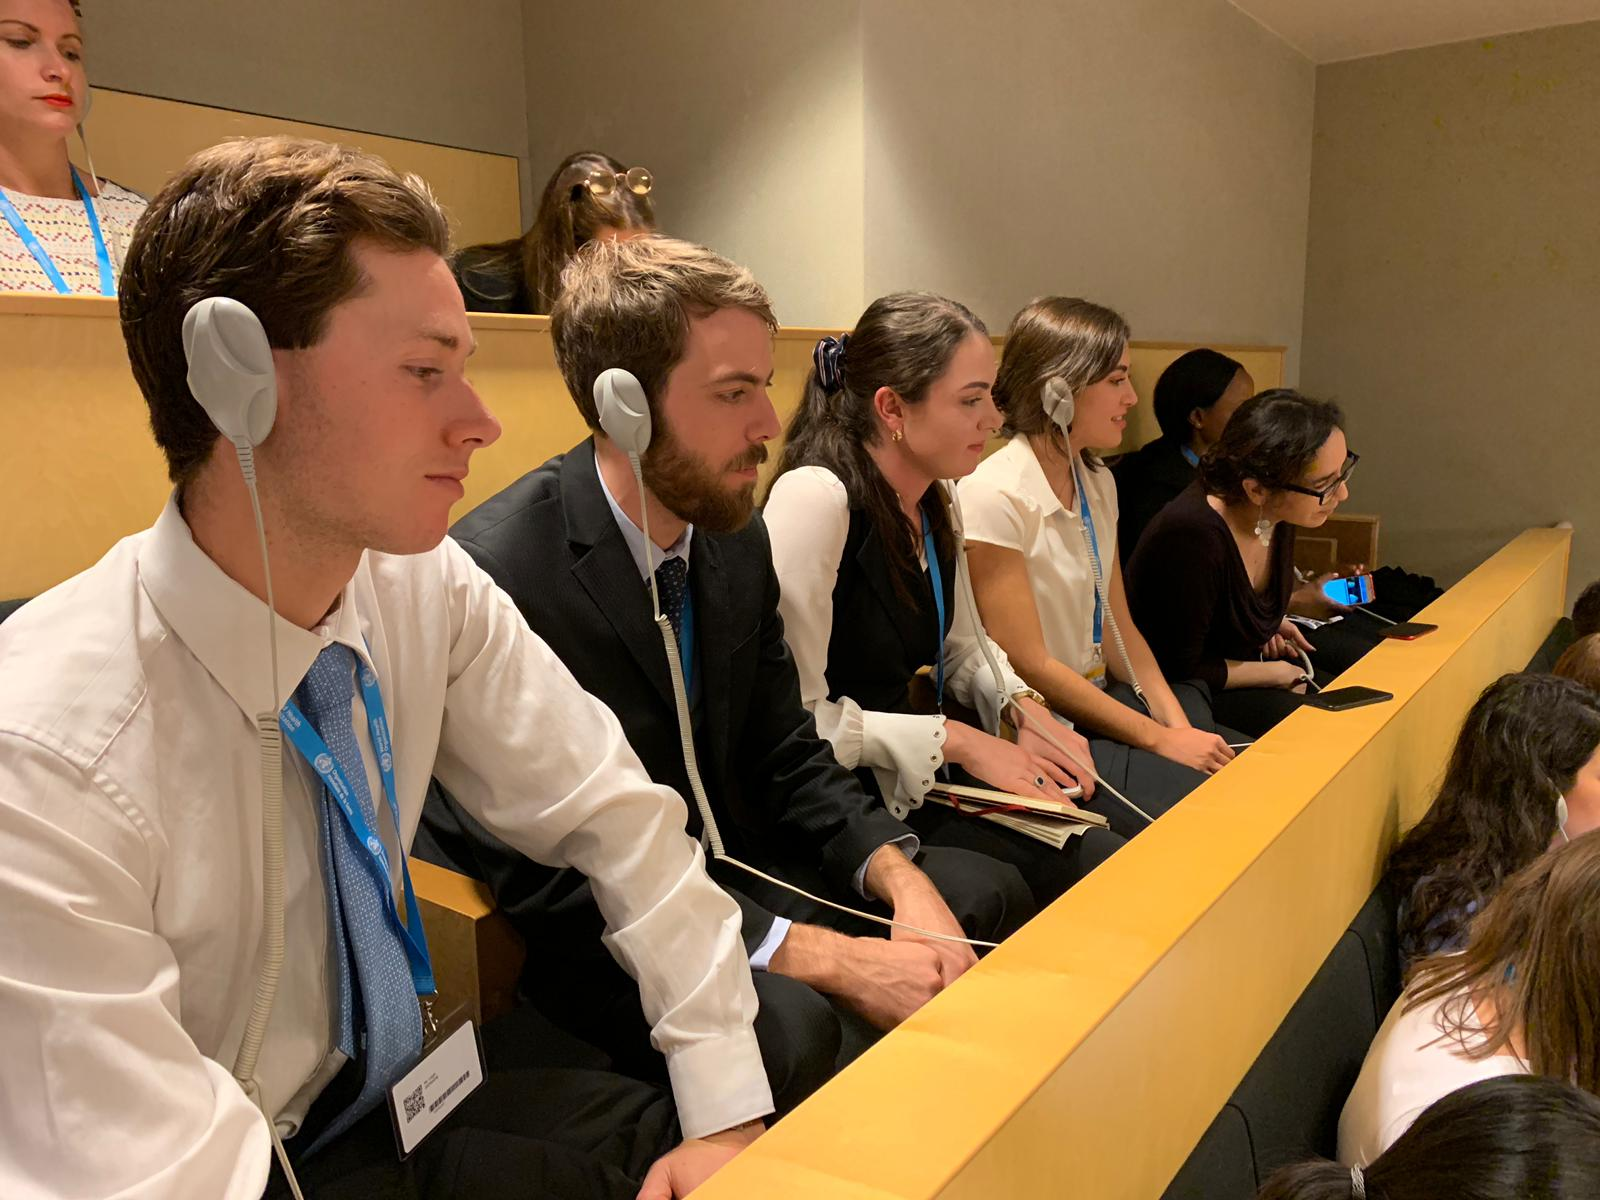 2019 Global Voices Scholars at the 73rd world health assembly.